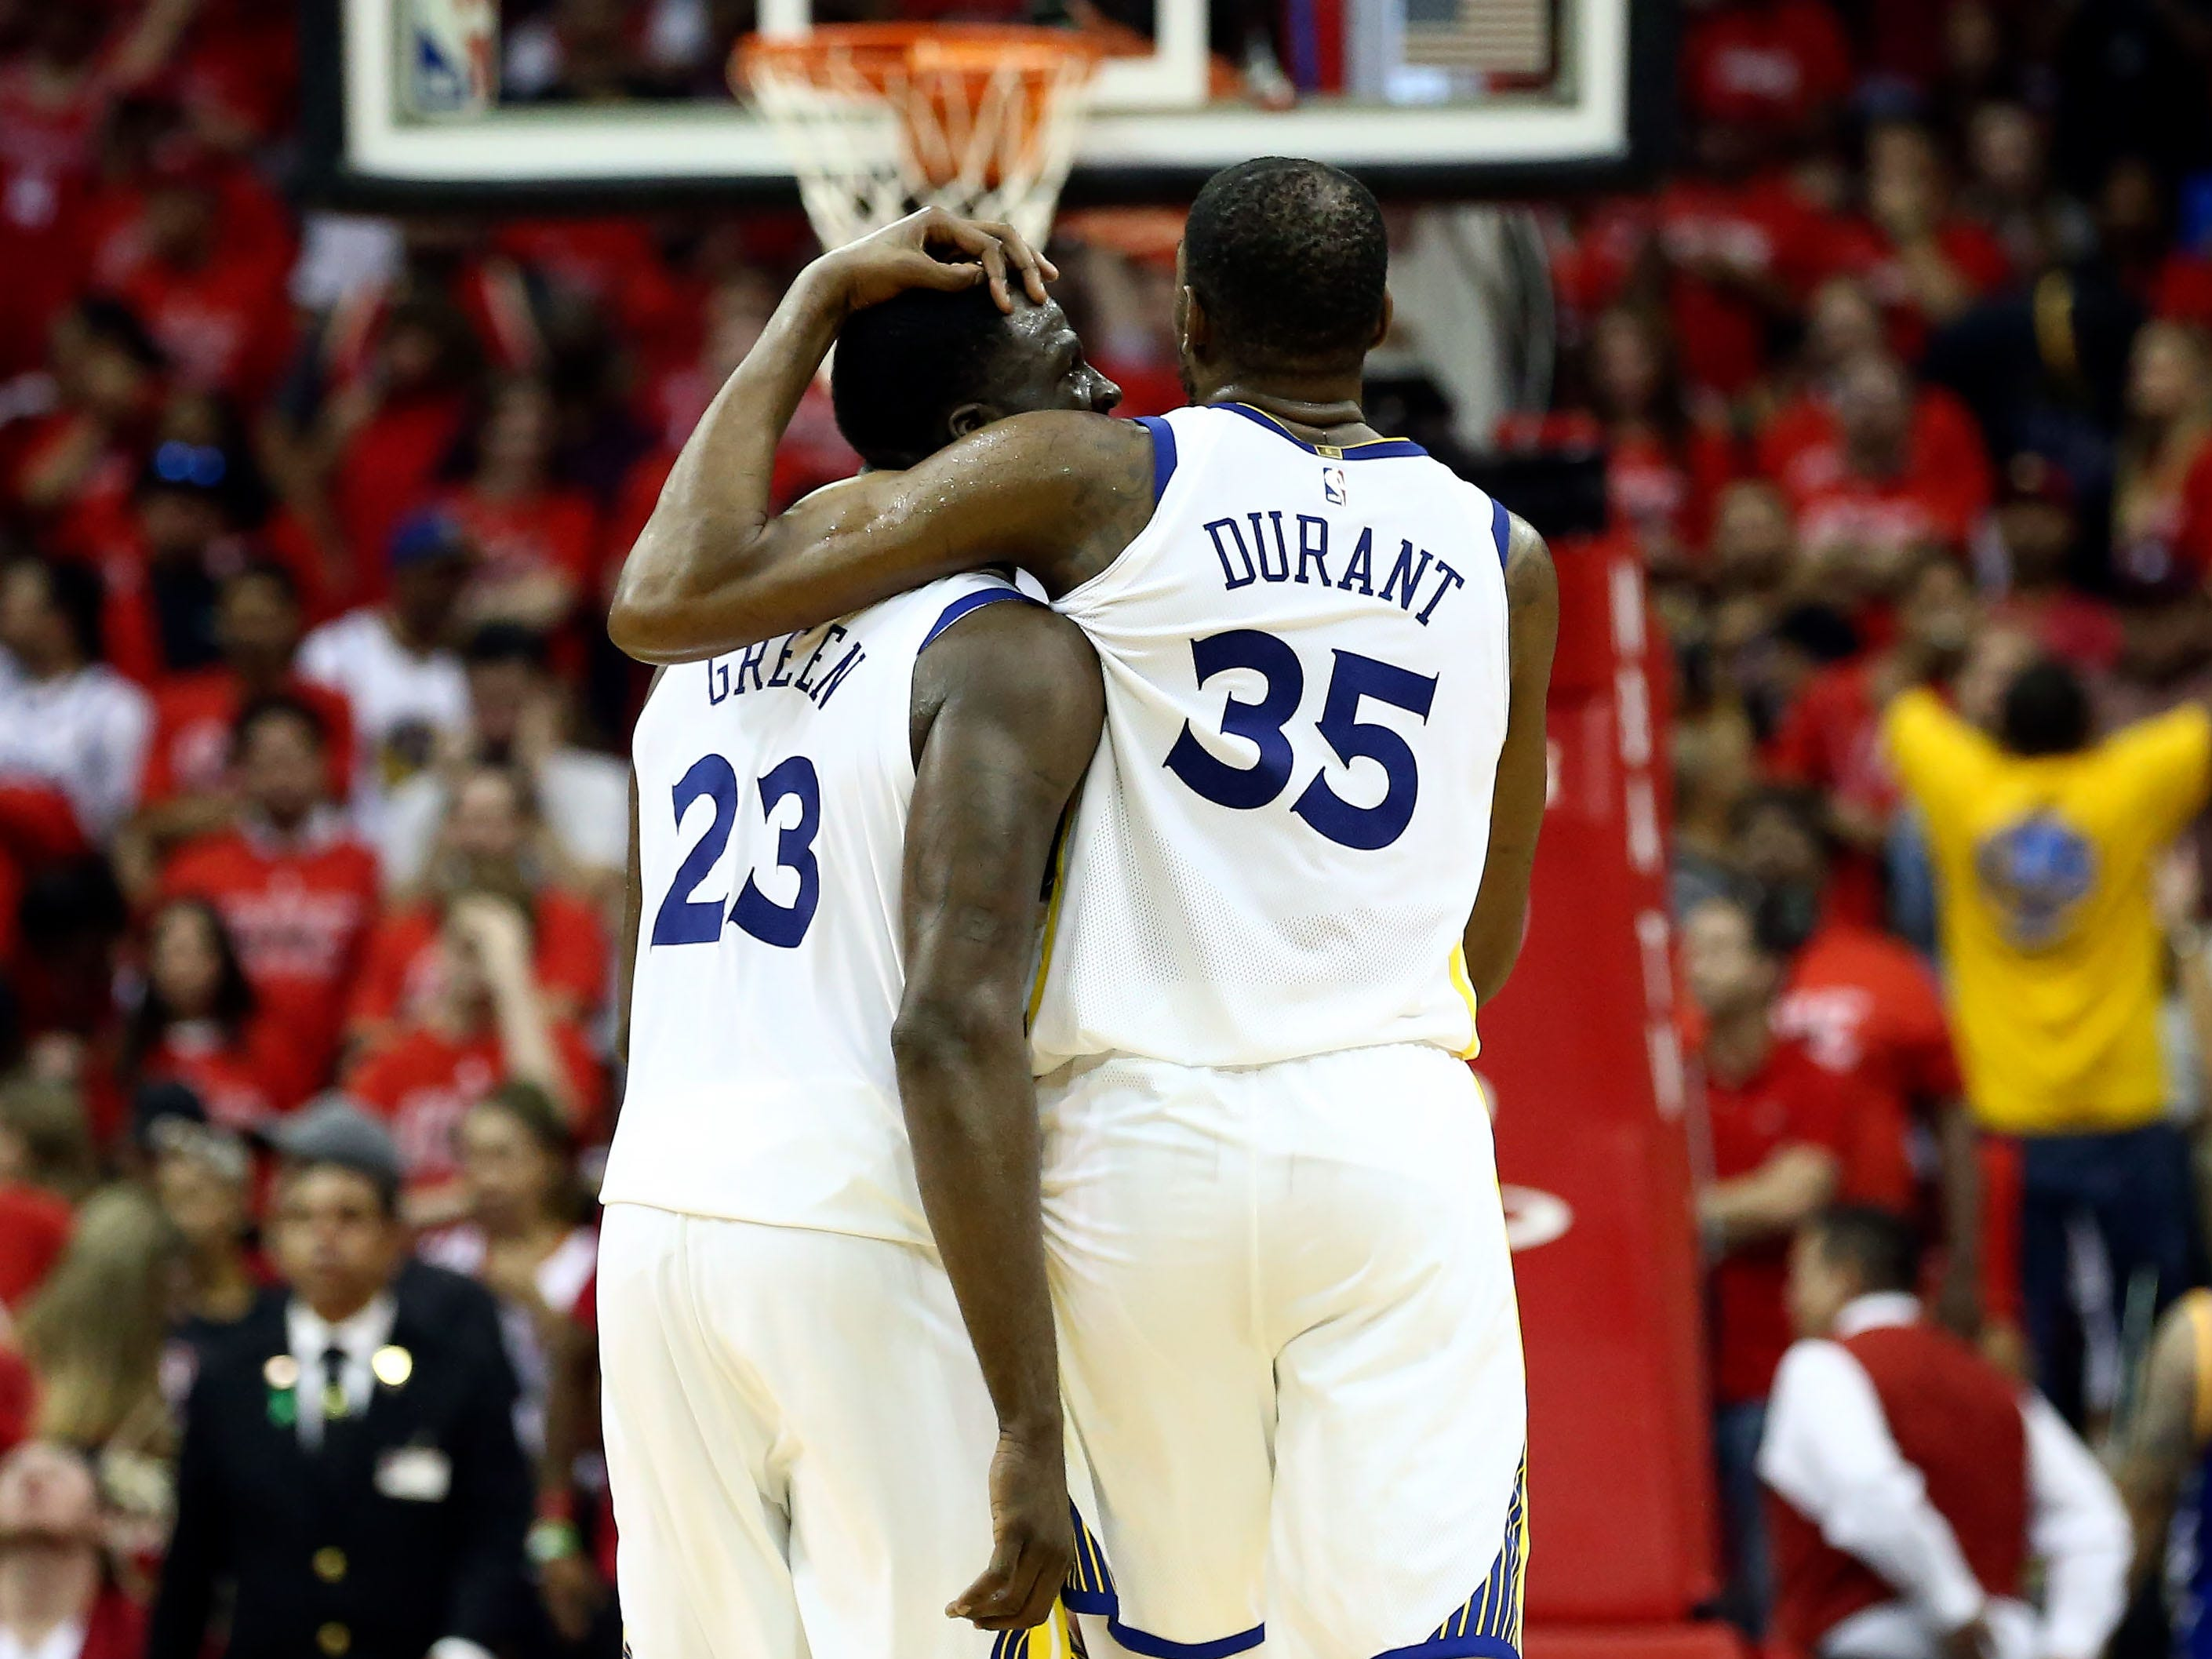 May 28: Golden State Warriors forwards Draymond Green (23) and Kevin Durant (35) hug in the final seconds of their Game 7 win over the Houston Rockets in the Western Conference final.